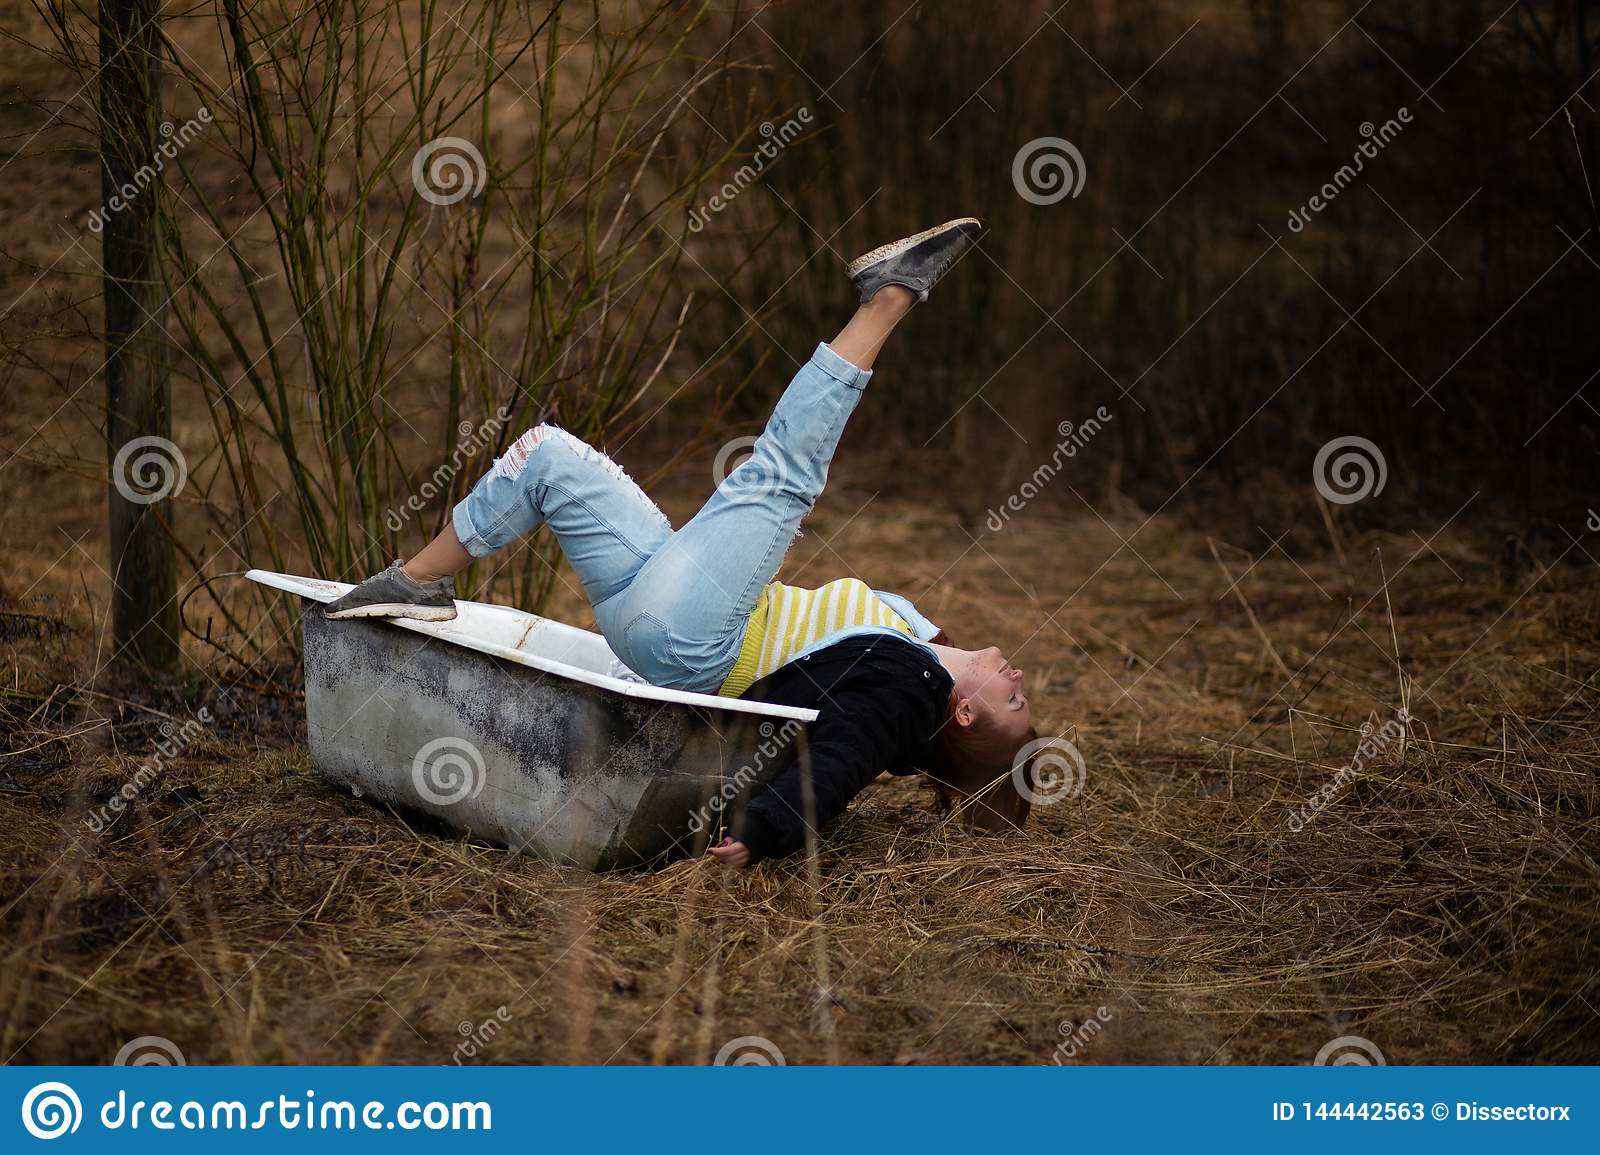 Young woman in clothes is taking an empty old bath in the middle of a forest